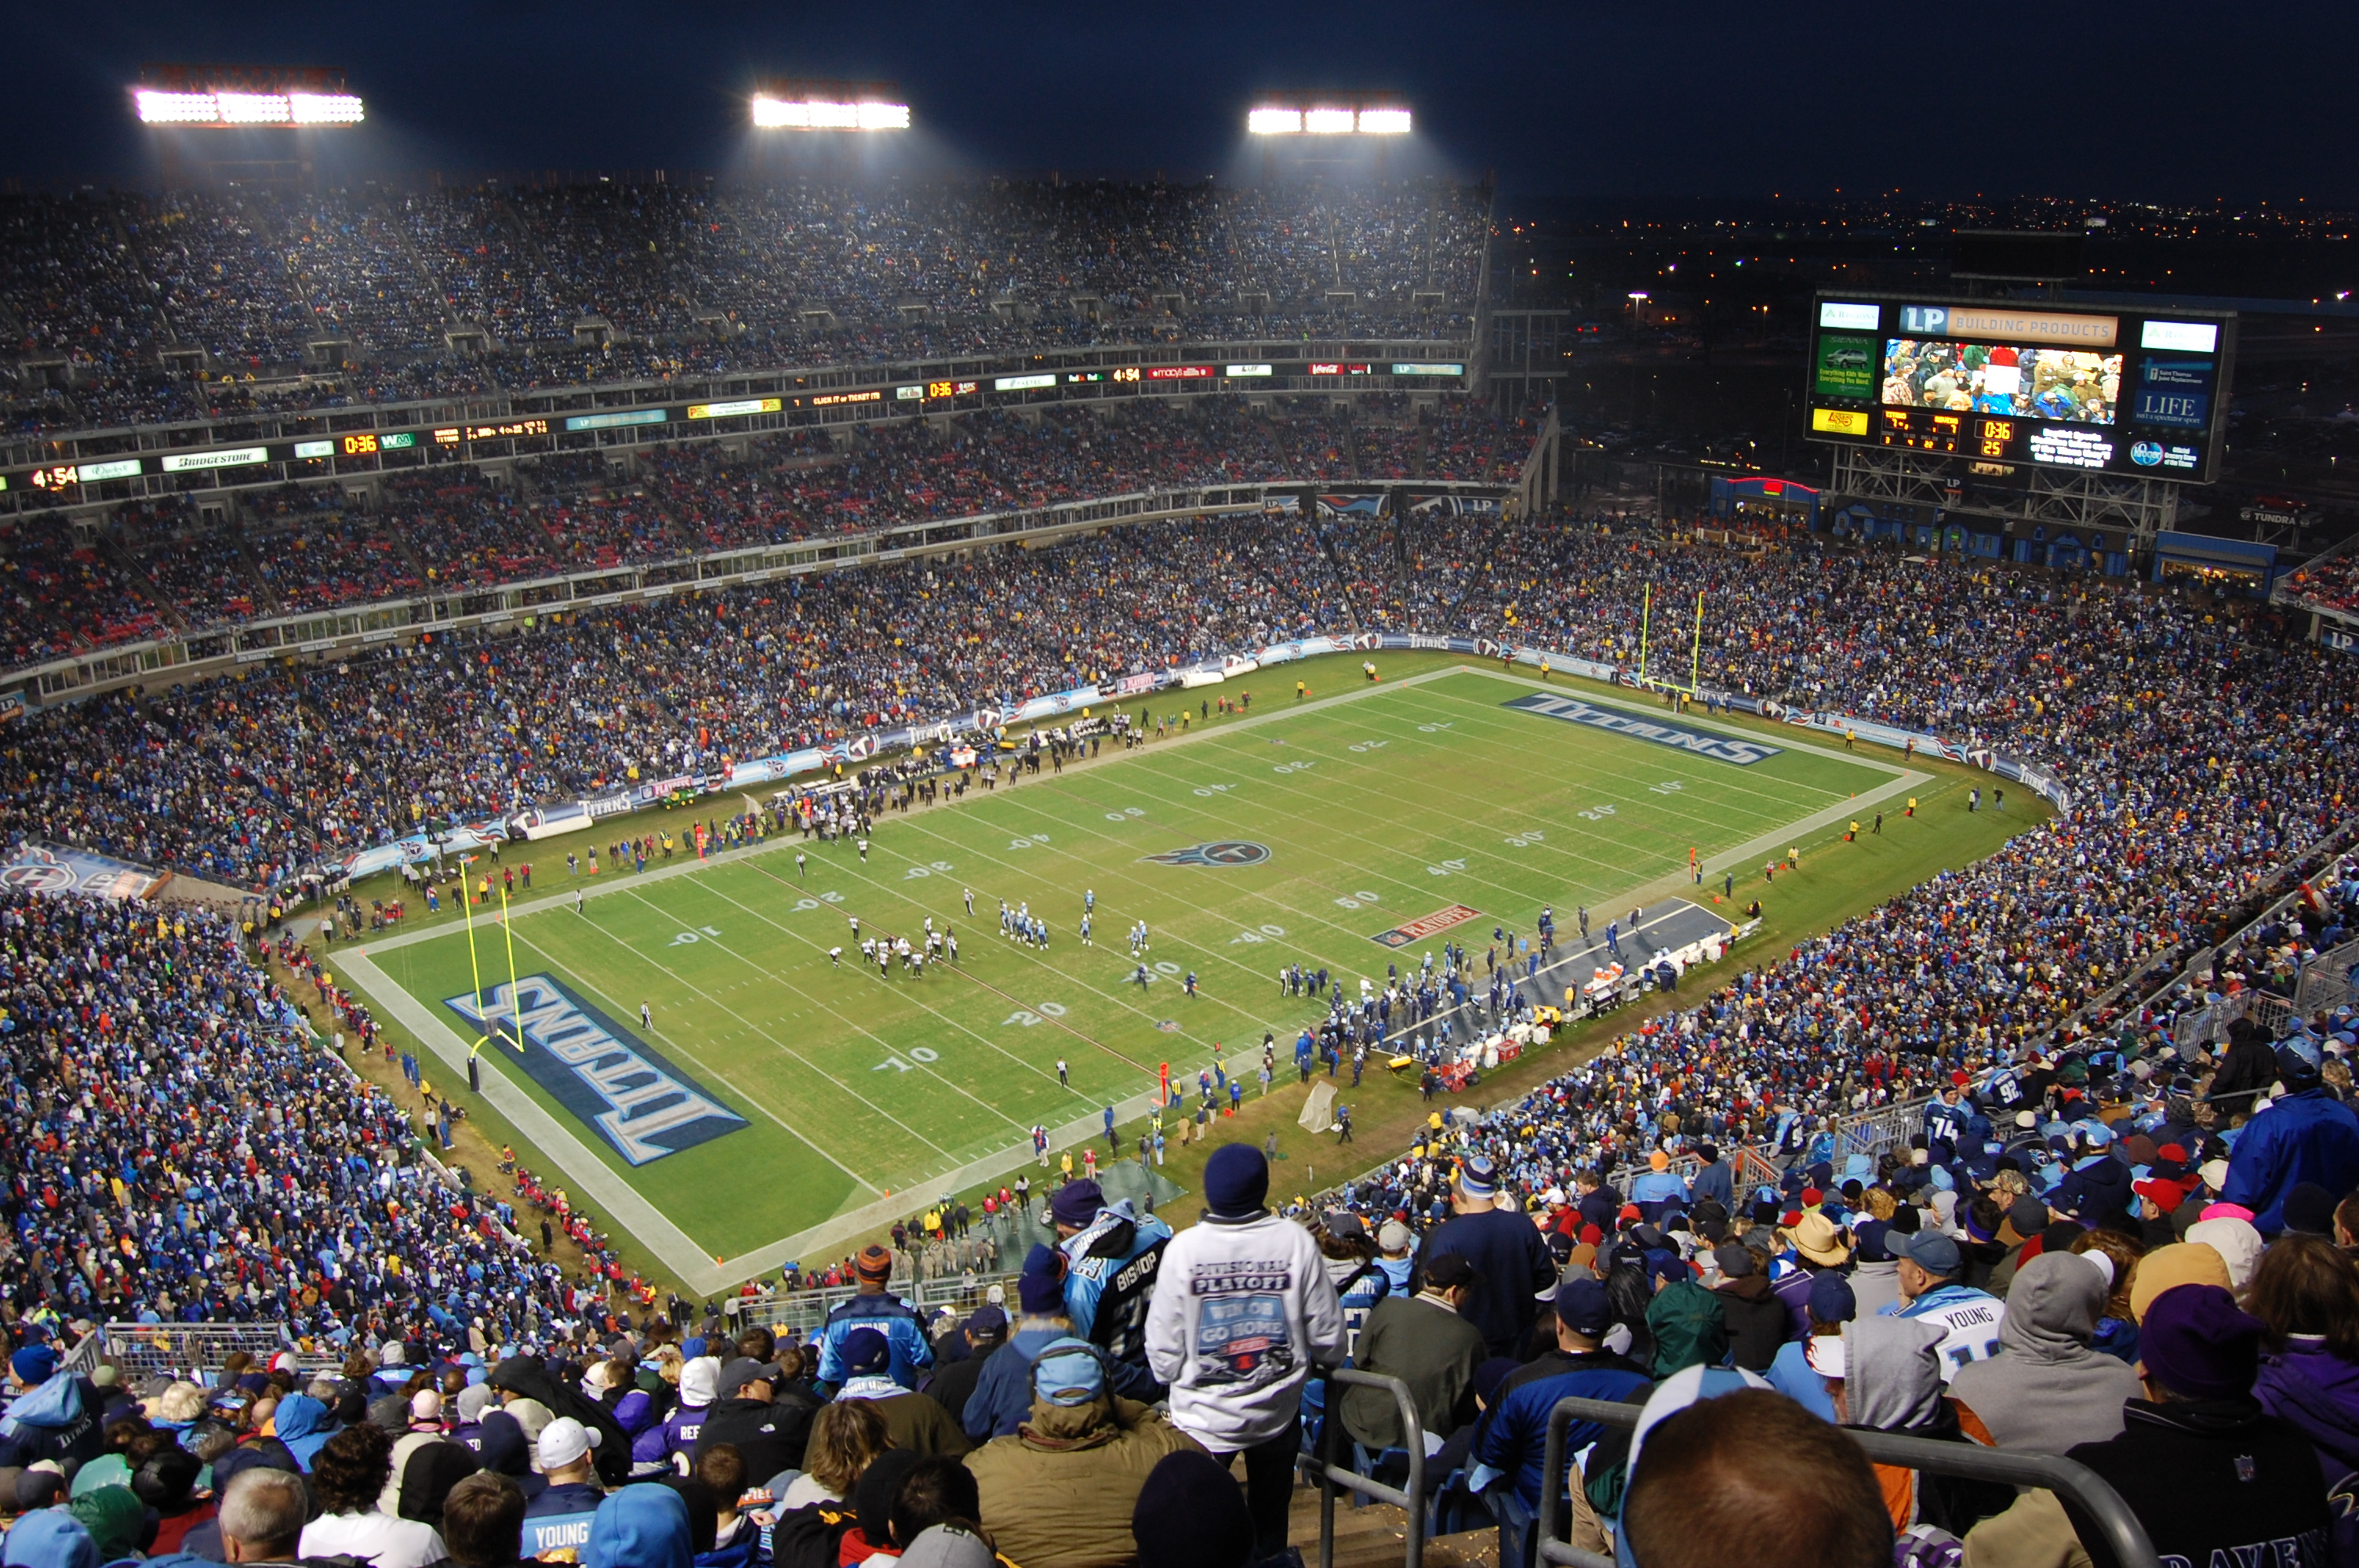 File Night Settles On Lp Field Jpg Wikimedia Commons